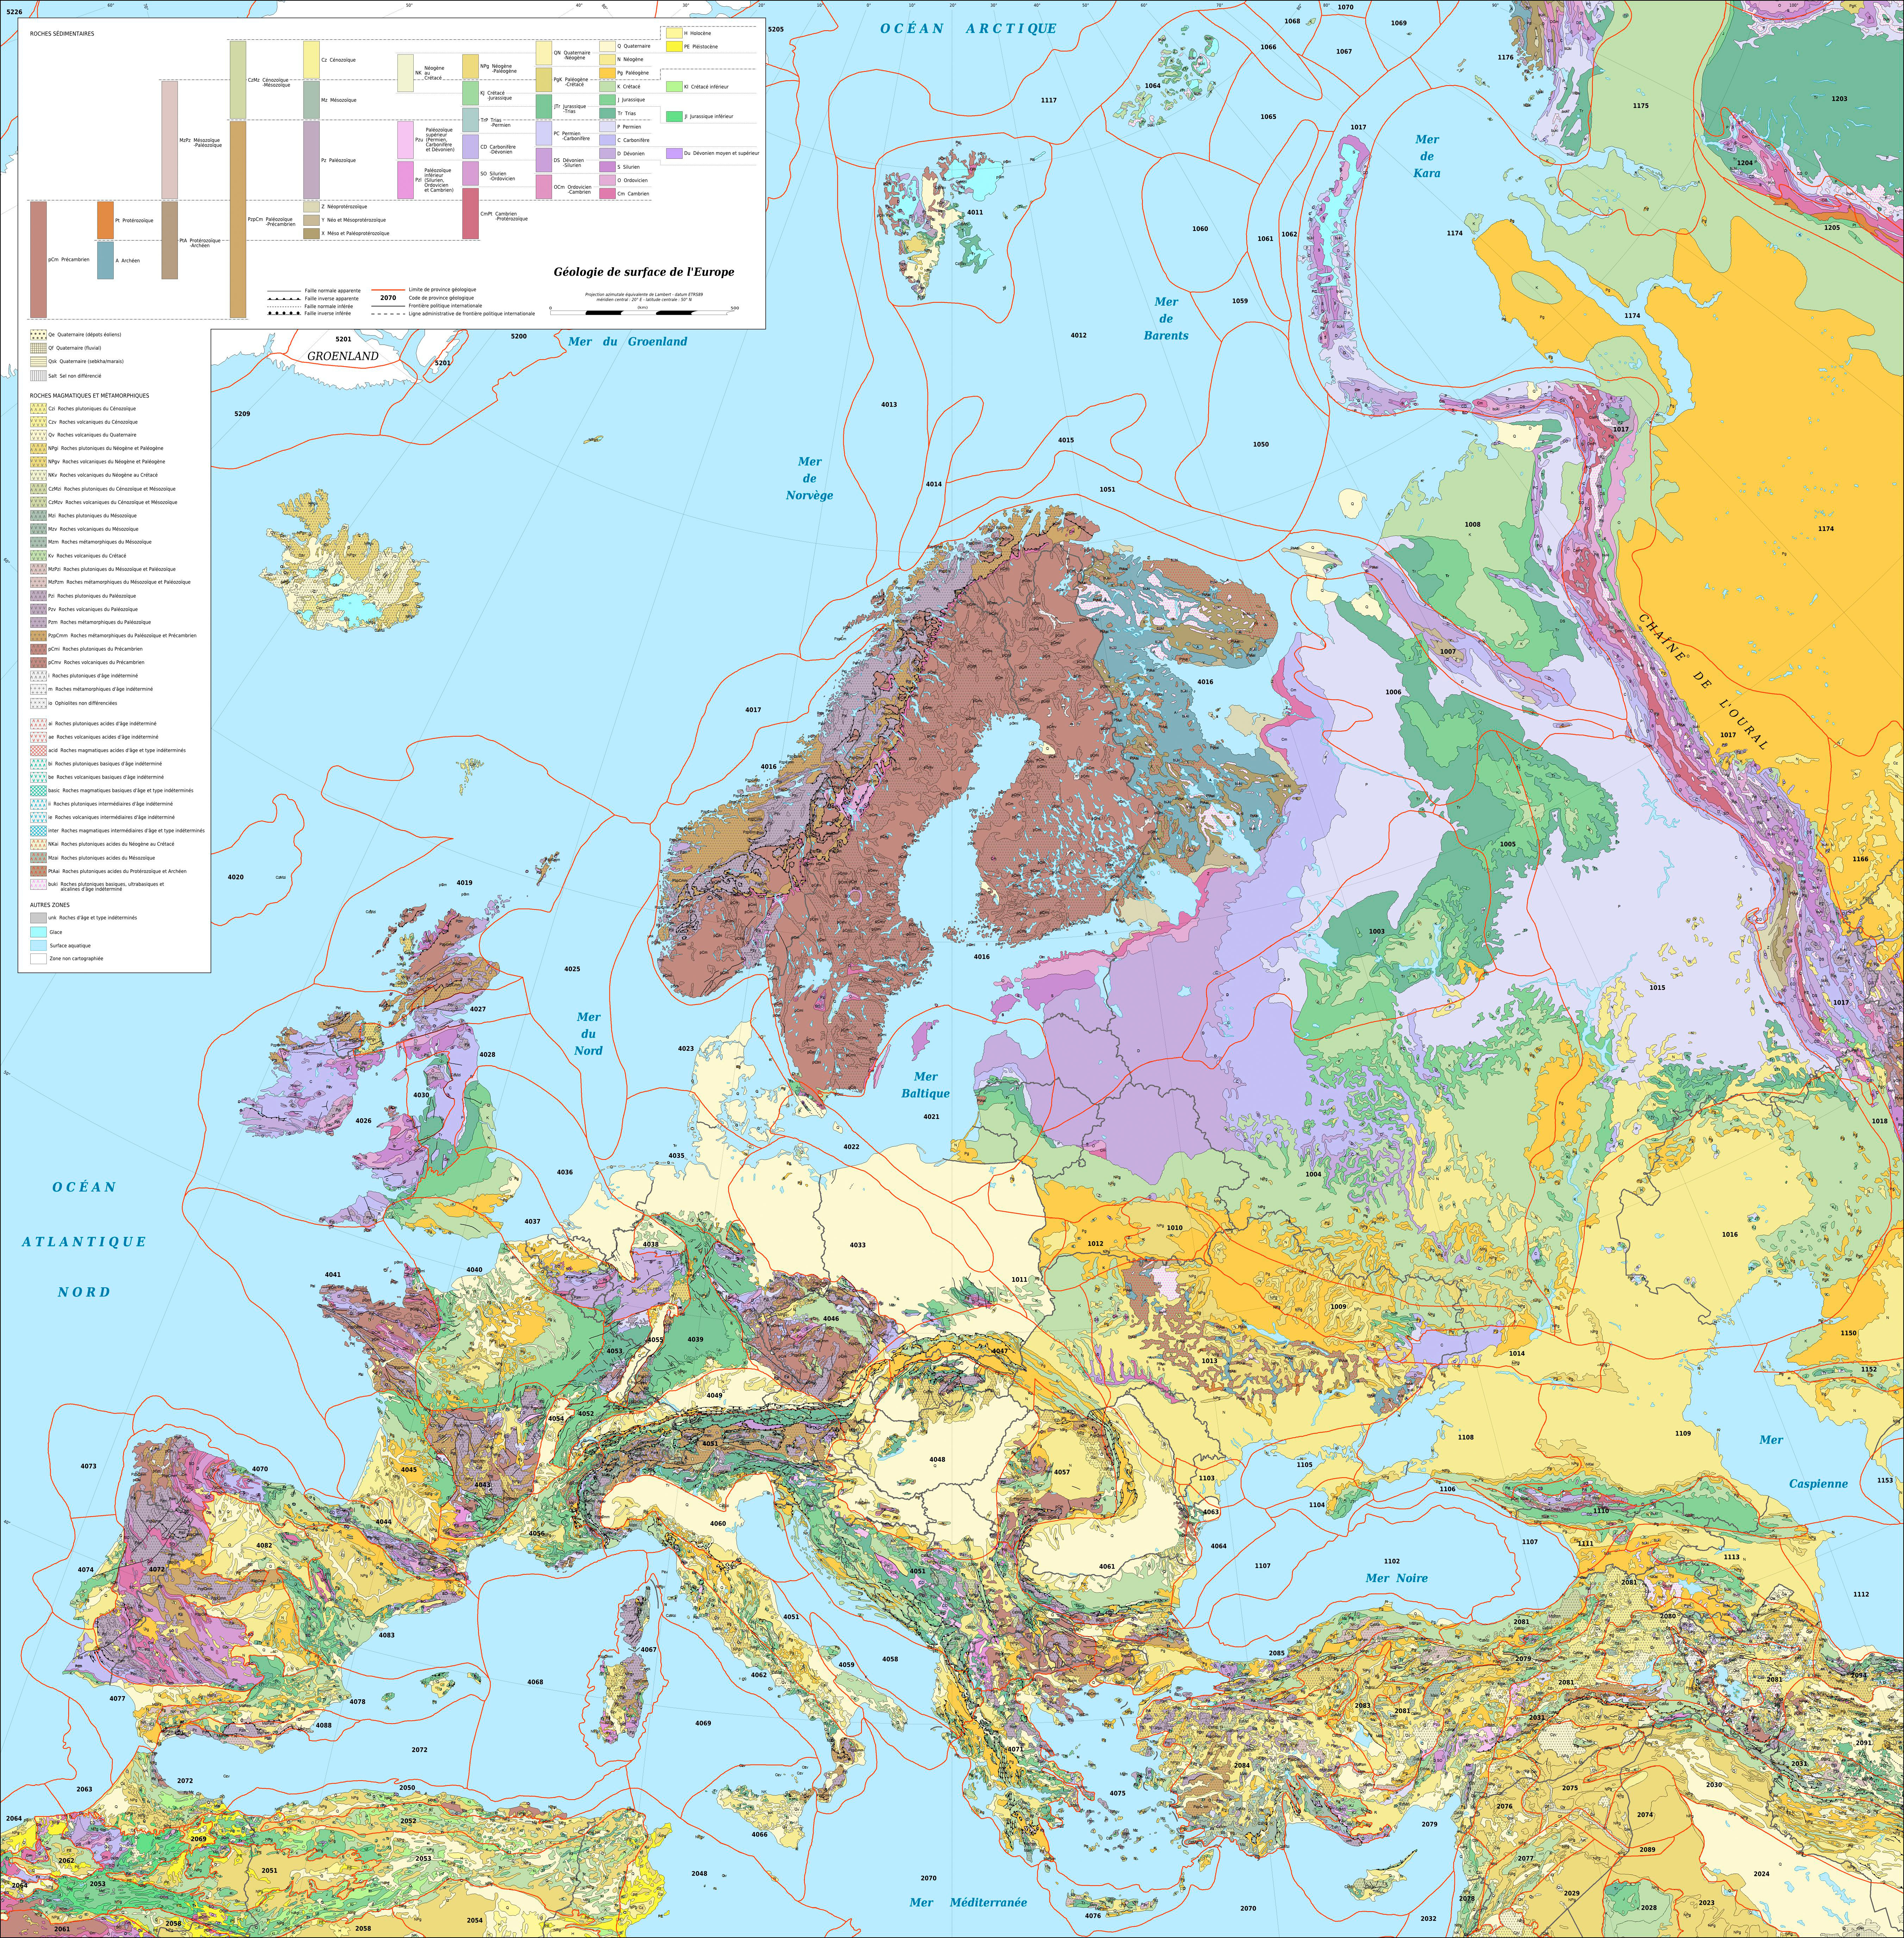 scandinavian peninsula map with File Europe Geological Map Fr on Scandinavian Countries as well Taking A Dna Ge ic Ethnicity Test Are You Who You Think You Are besides Russia Location On Map also Bothnia together with File Europe geological map Fr.